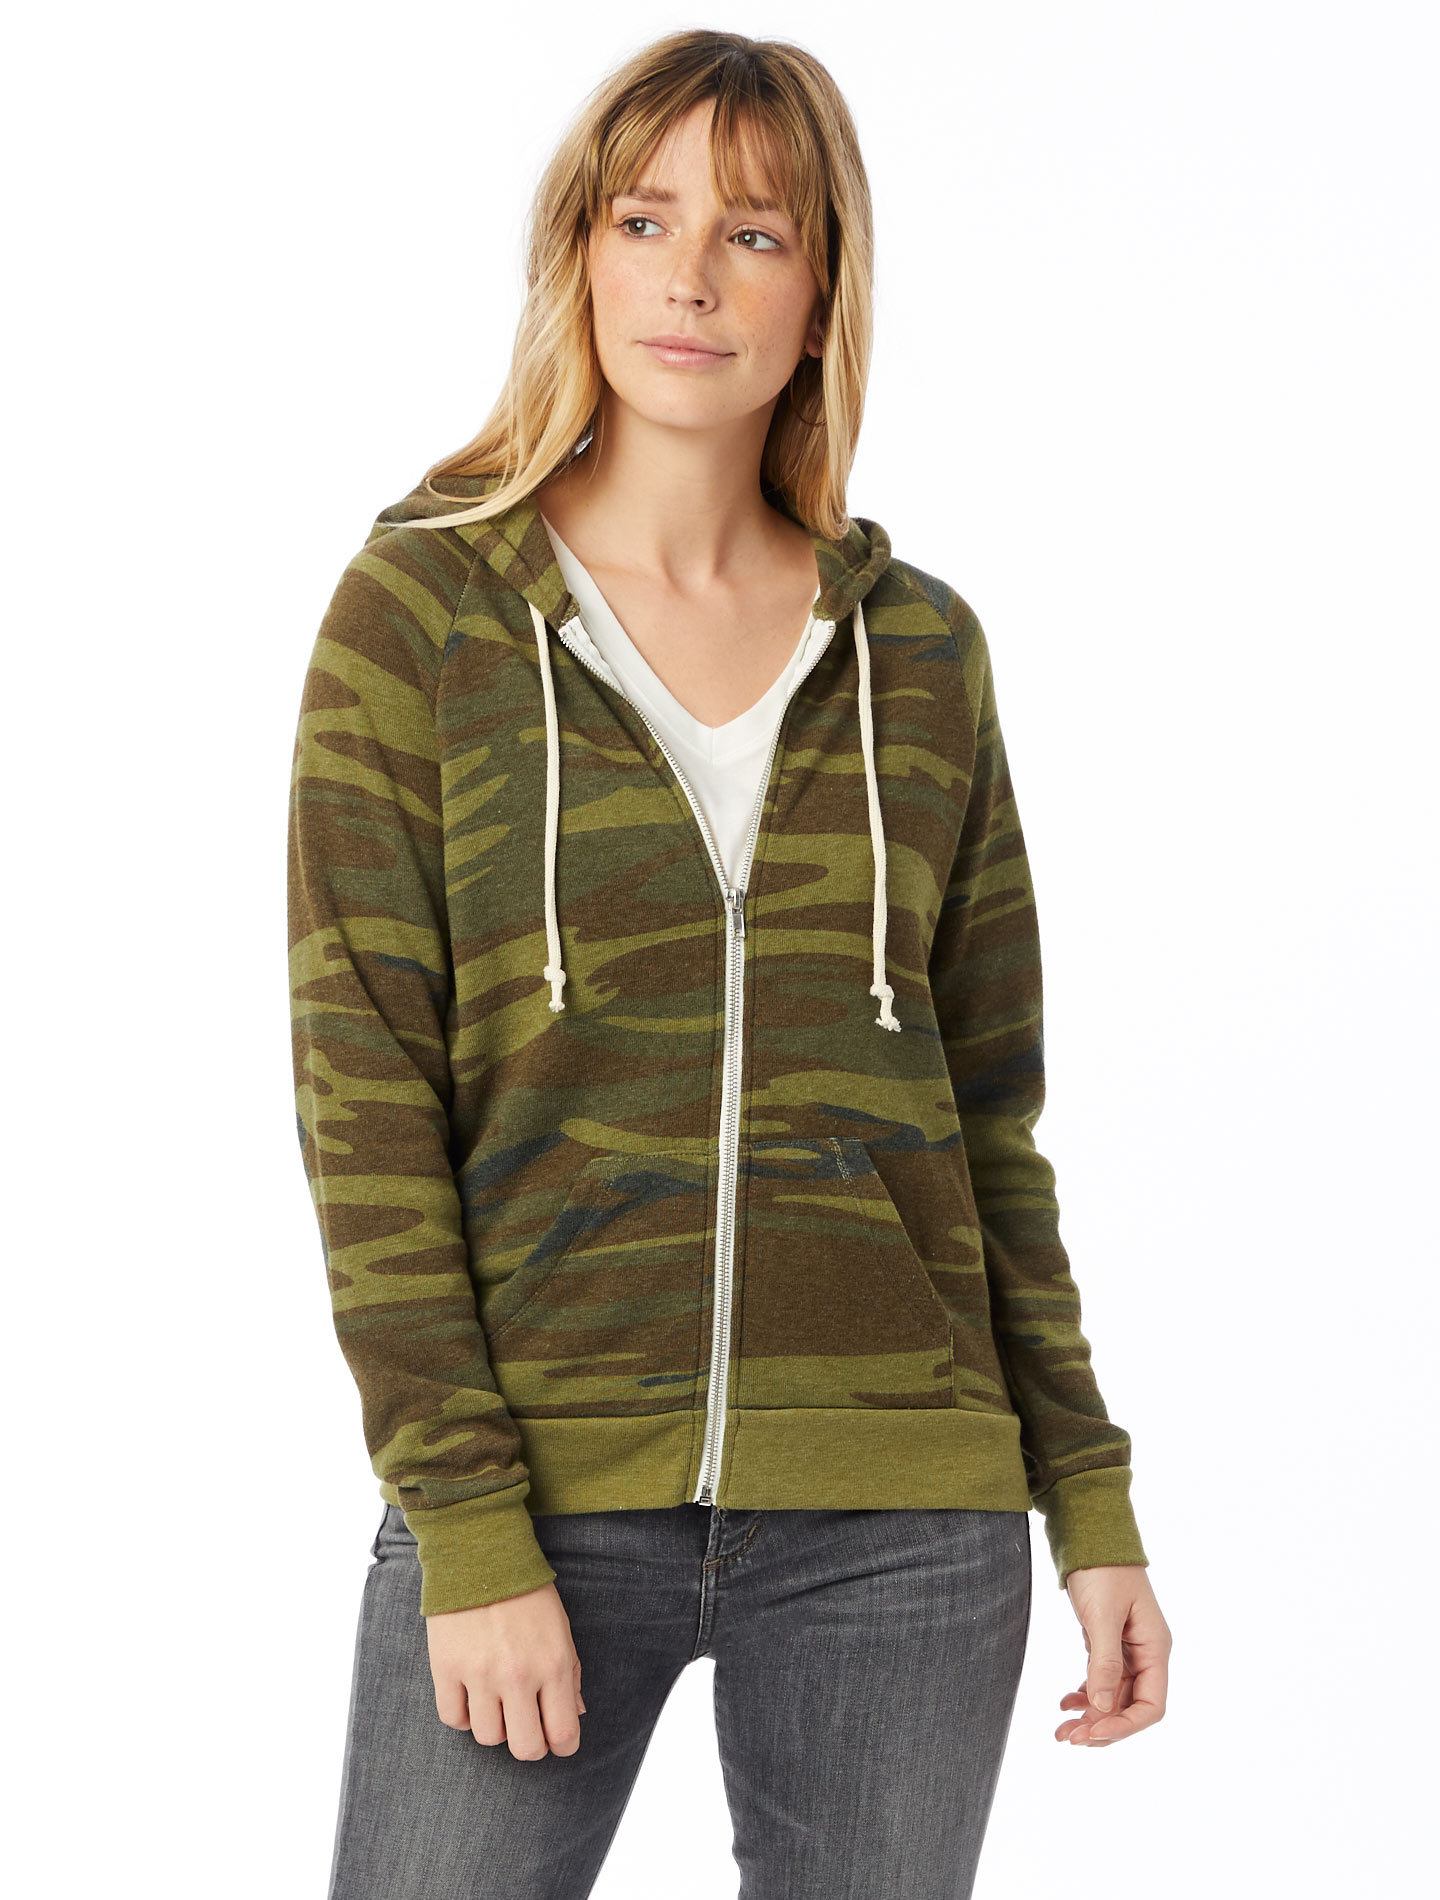 A classic zip-up hoodie for women, crafted from our super soft Eco-Fleece for warmth all year long. Features a slim silhouette.